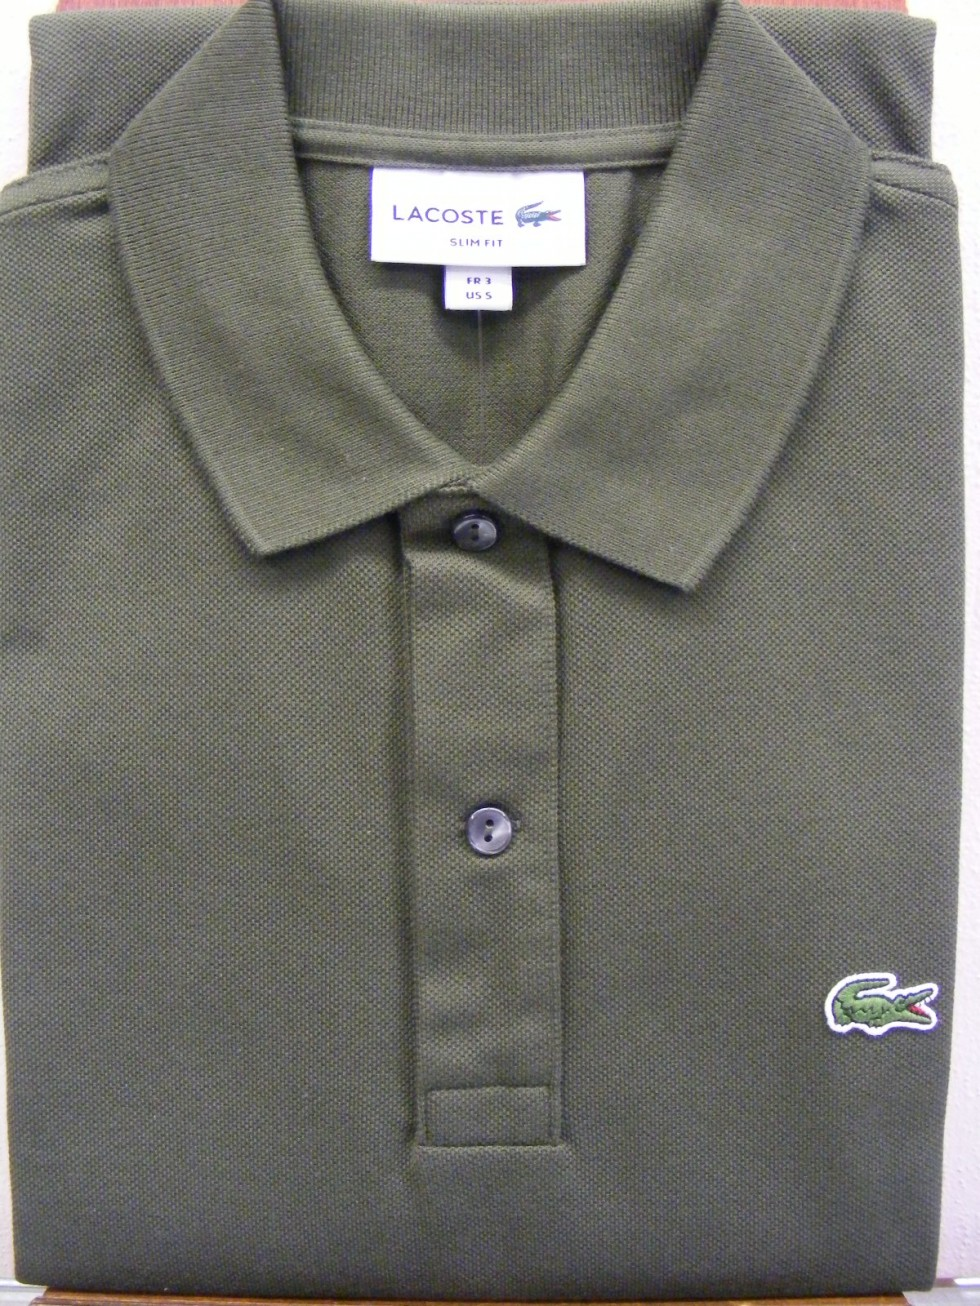 Polo Lacoste slim fit  manica corta uomo PH4012